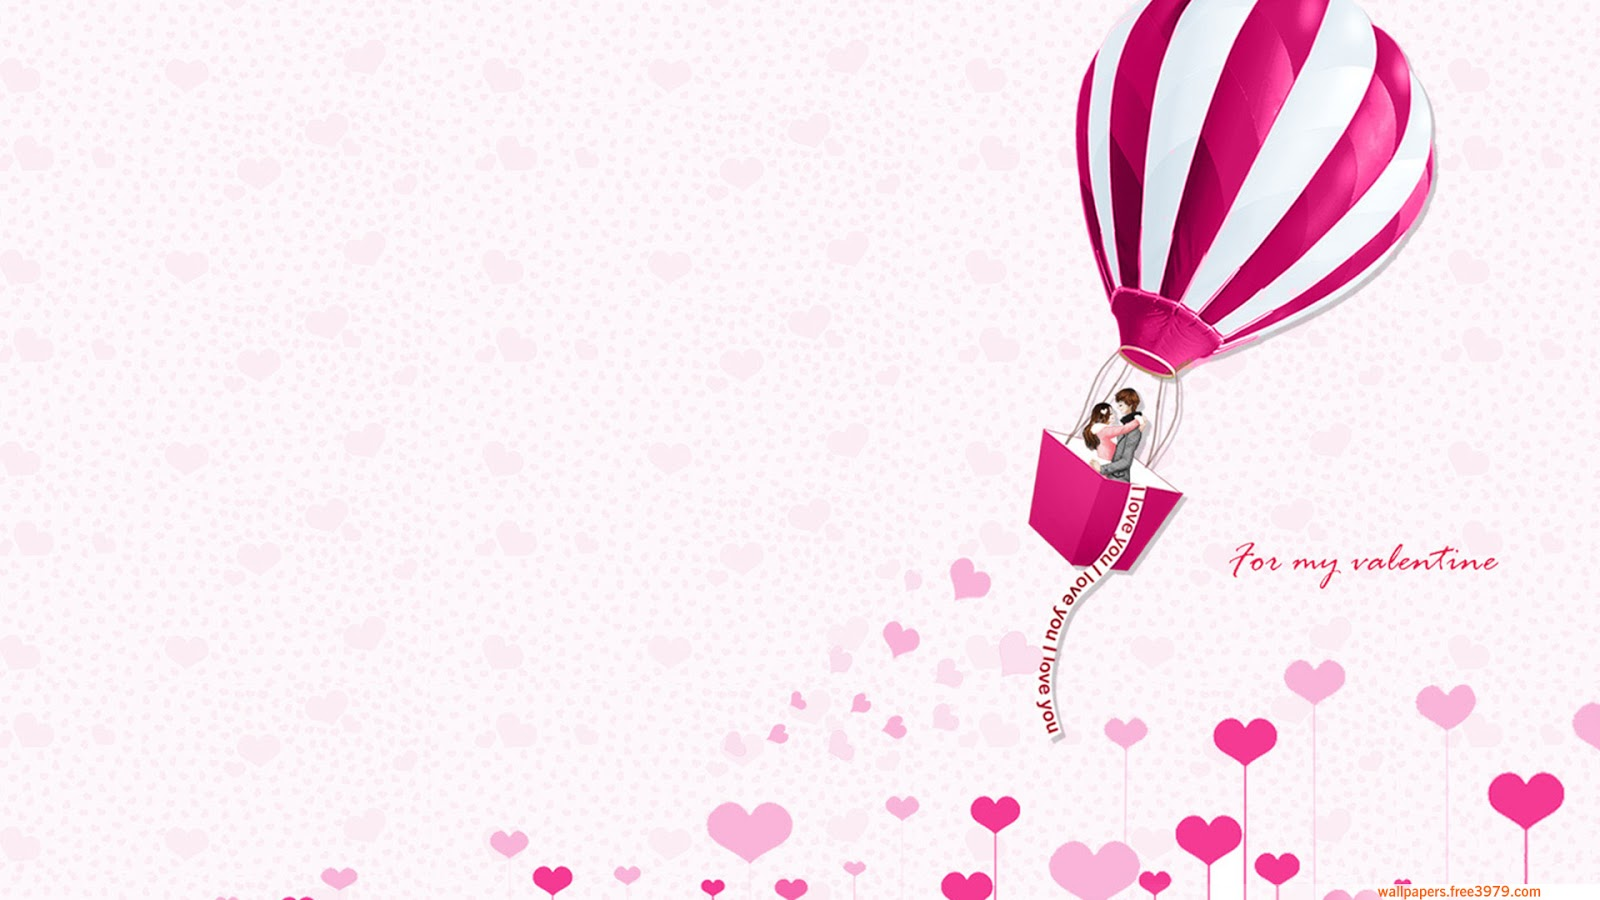 download Cute Valentines Day Wallpaper Sweet Wallpapers for